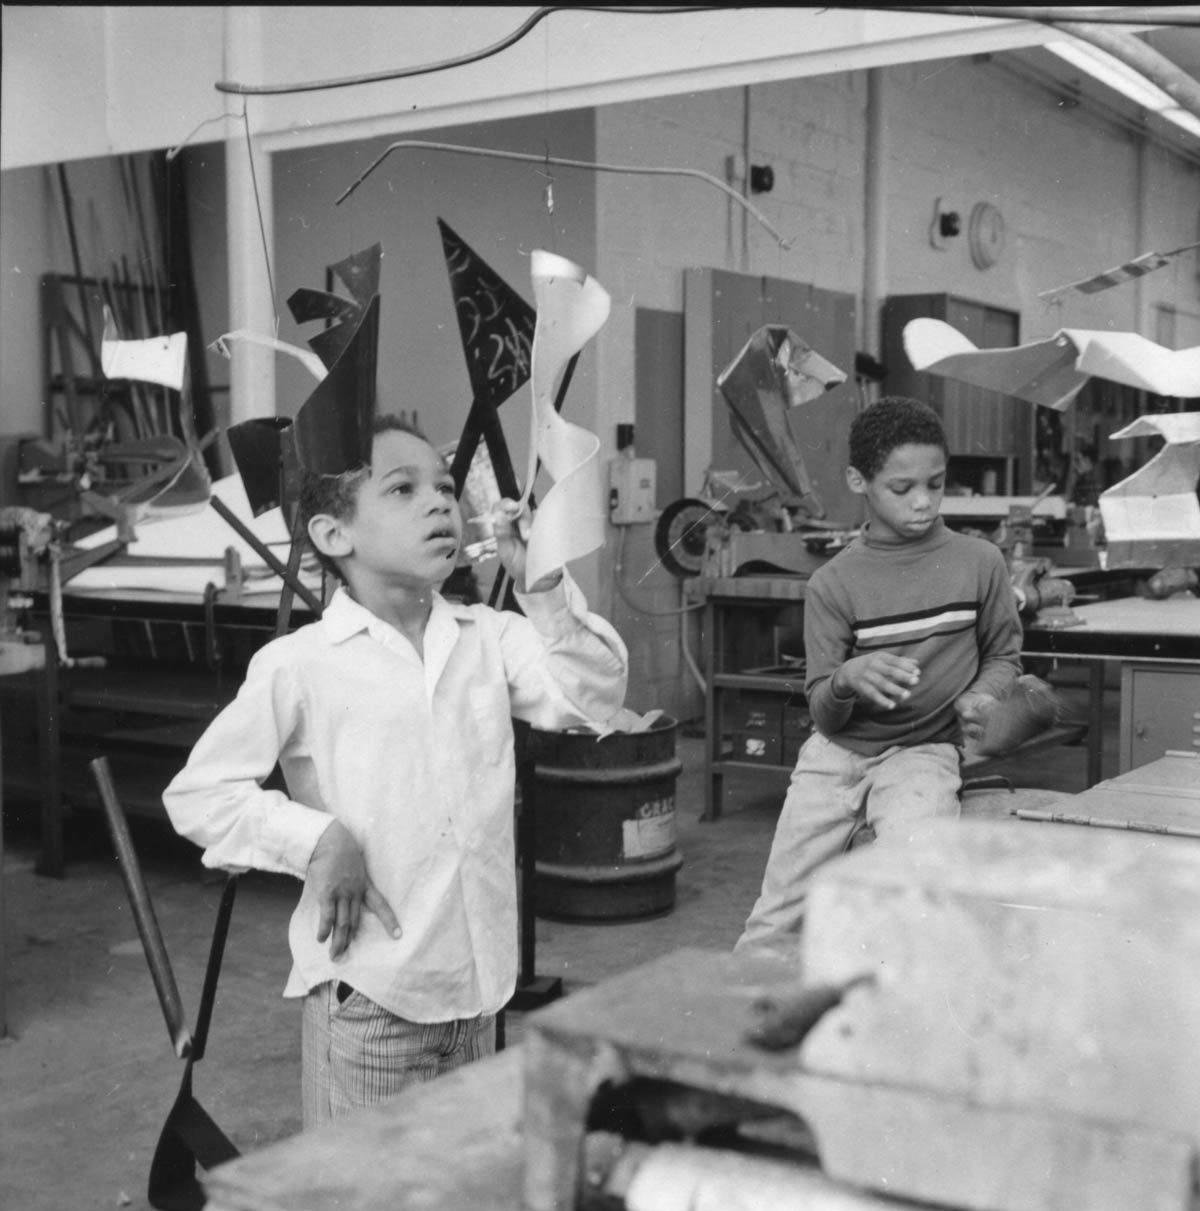 Students with Calder-inspired mobiles, 1968